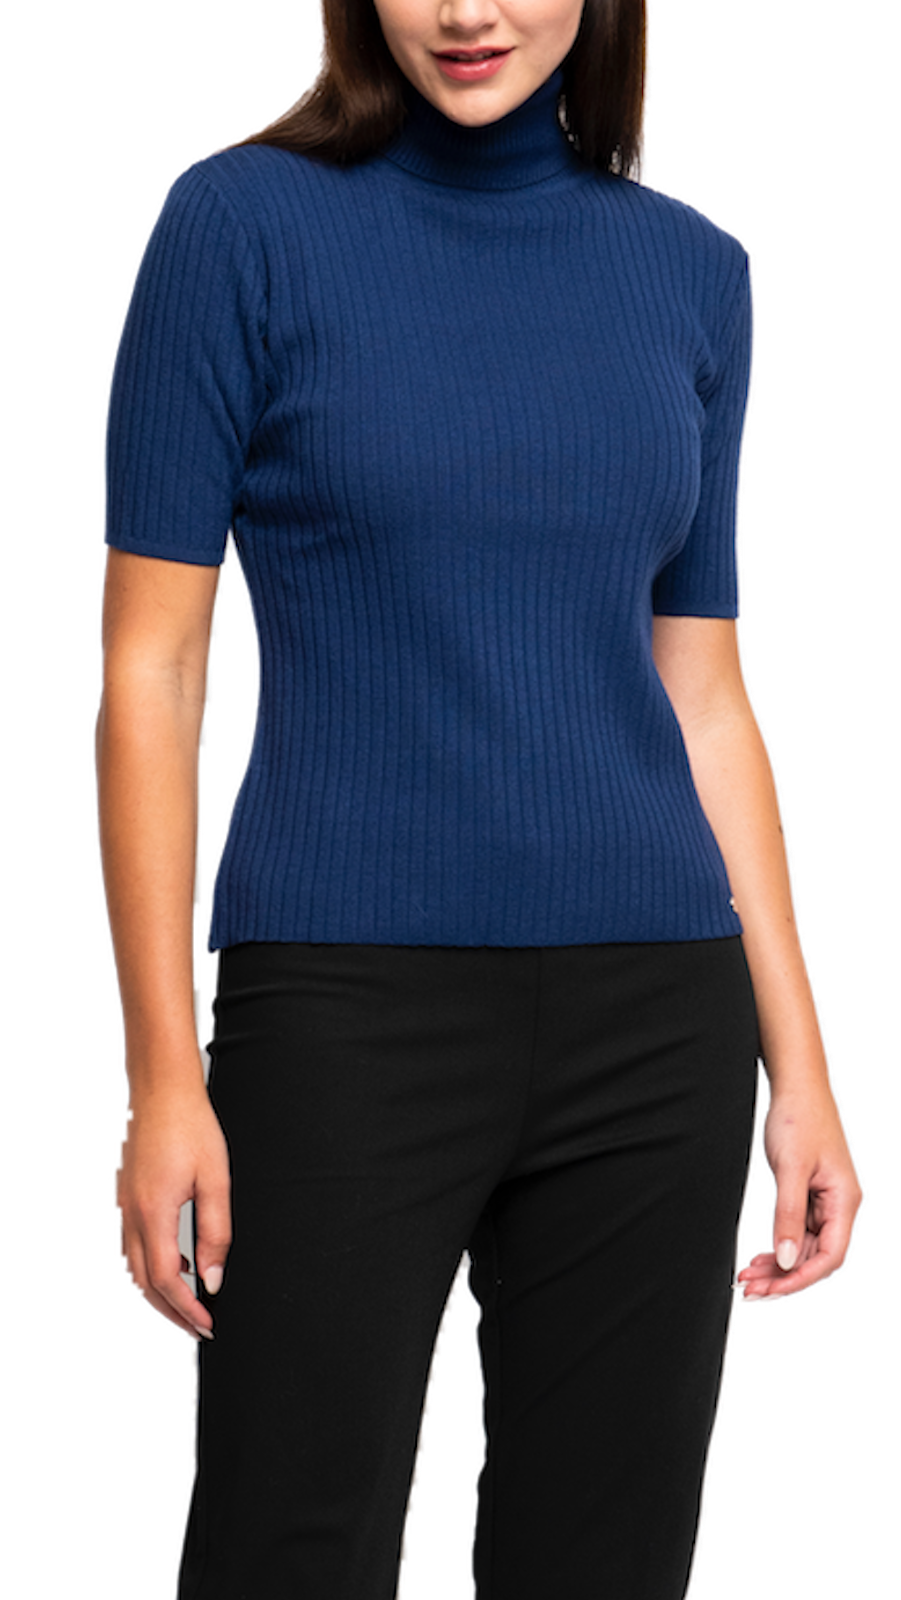 Tory Vertical Rib Knit Turtle Neck Top; Royal Blue